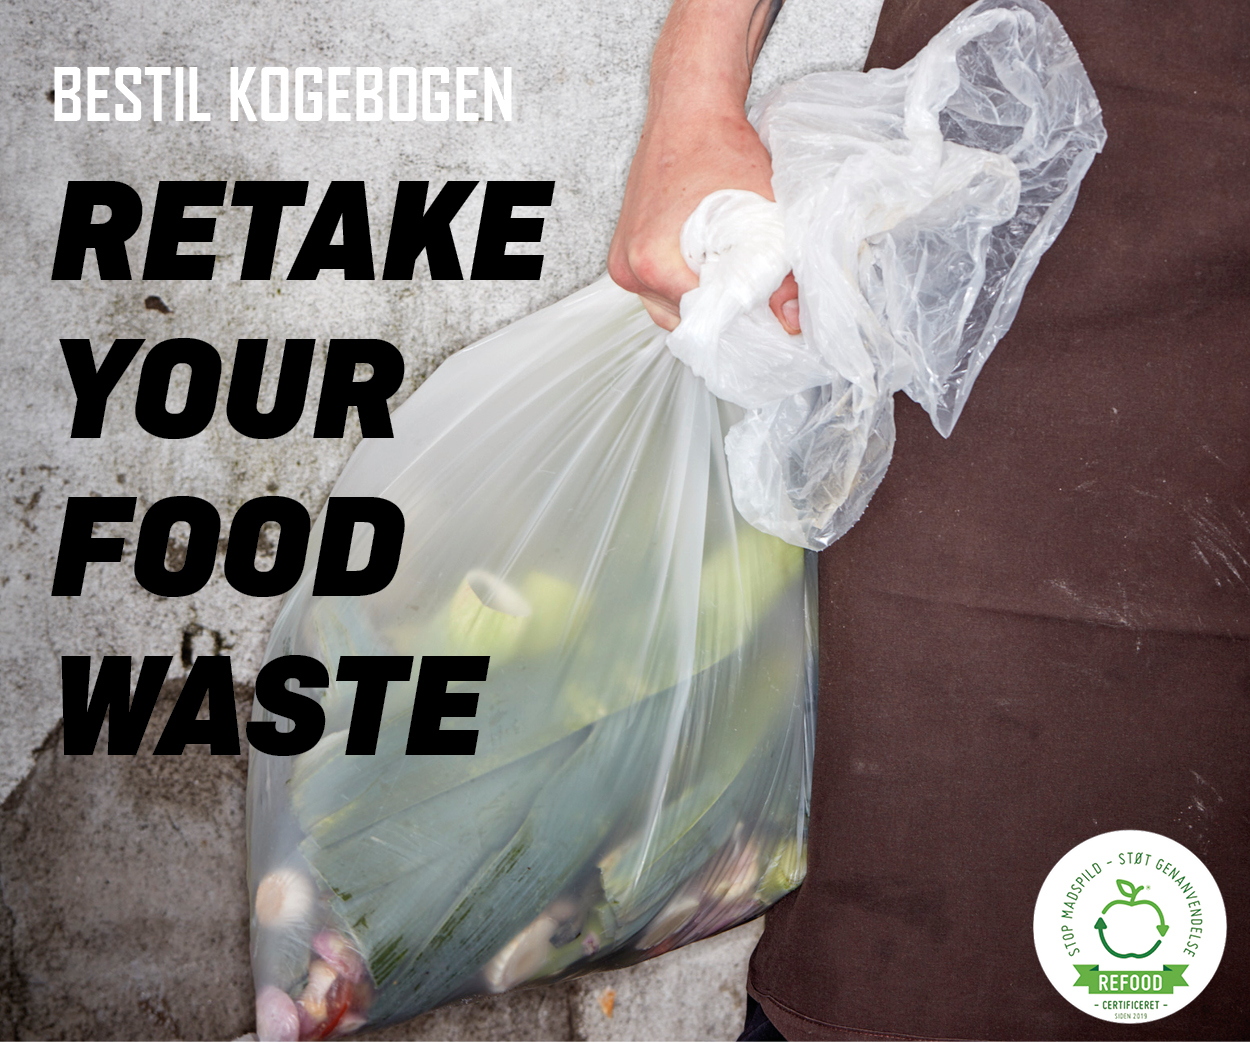 ReTake Your FoodWaste